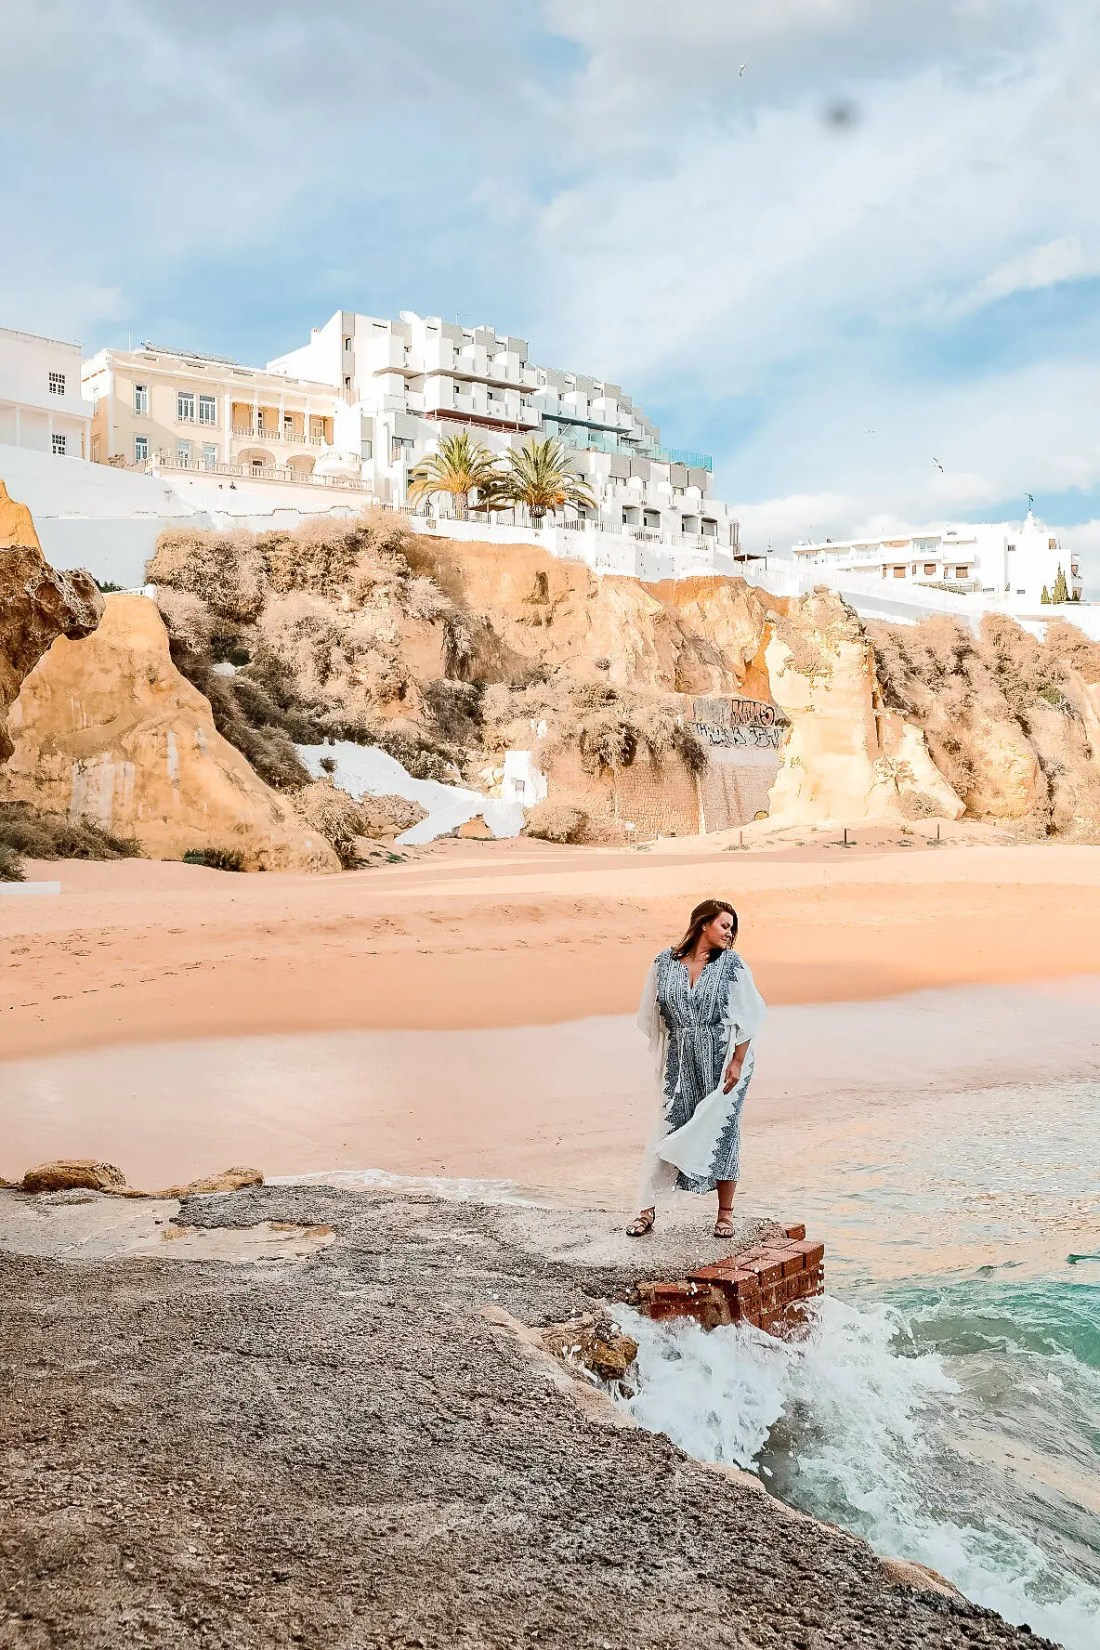 How to go to Albufeira From Faro?